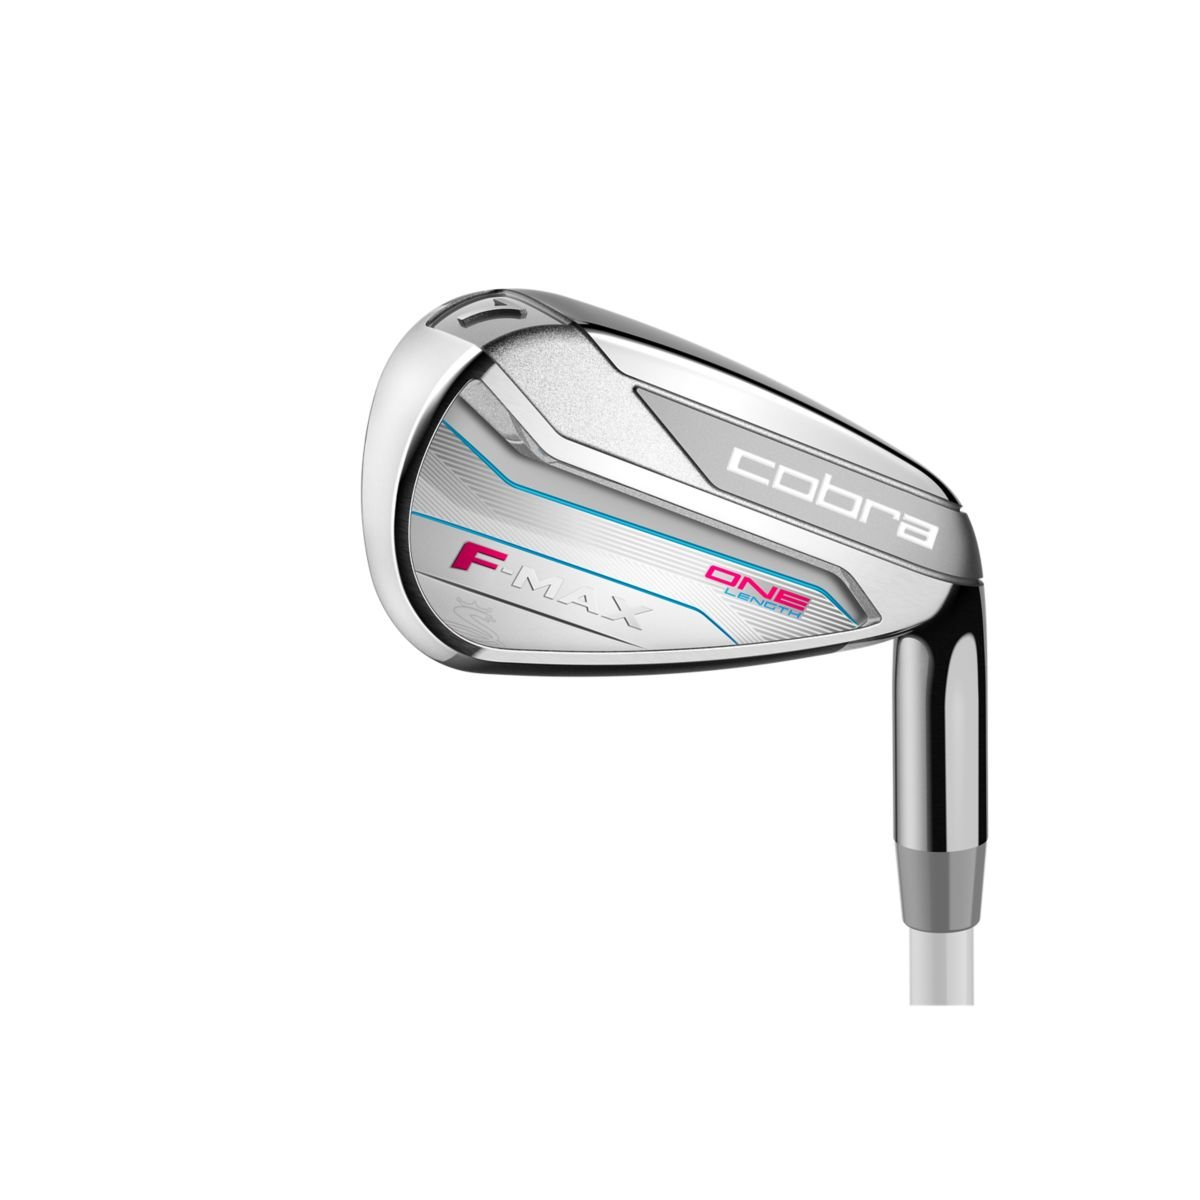 943a8b2cf23f3 Cobra Women's 2018 F-Max One Length Golf Iron Set